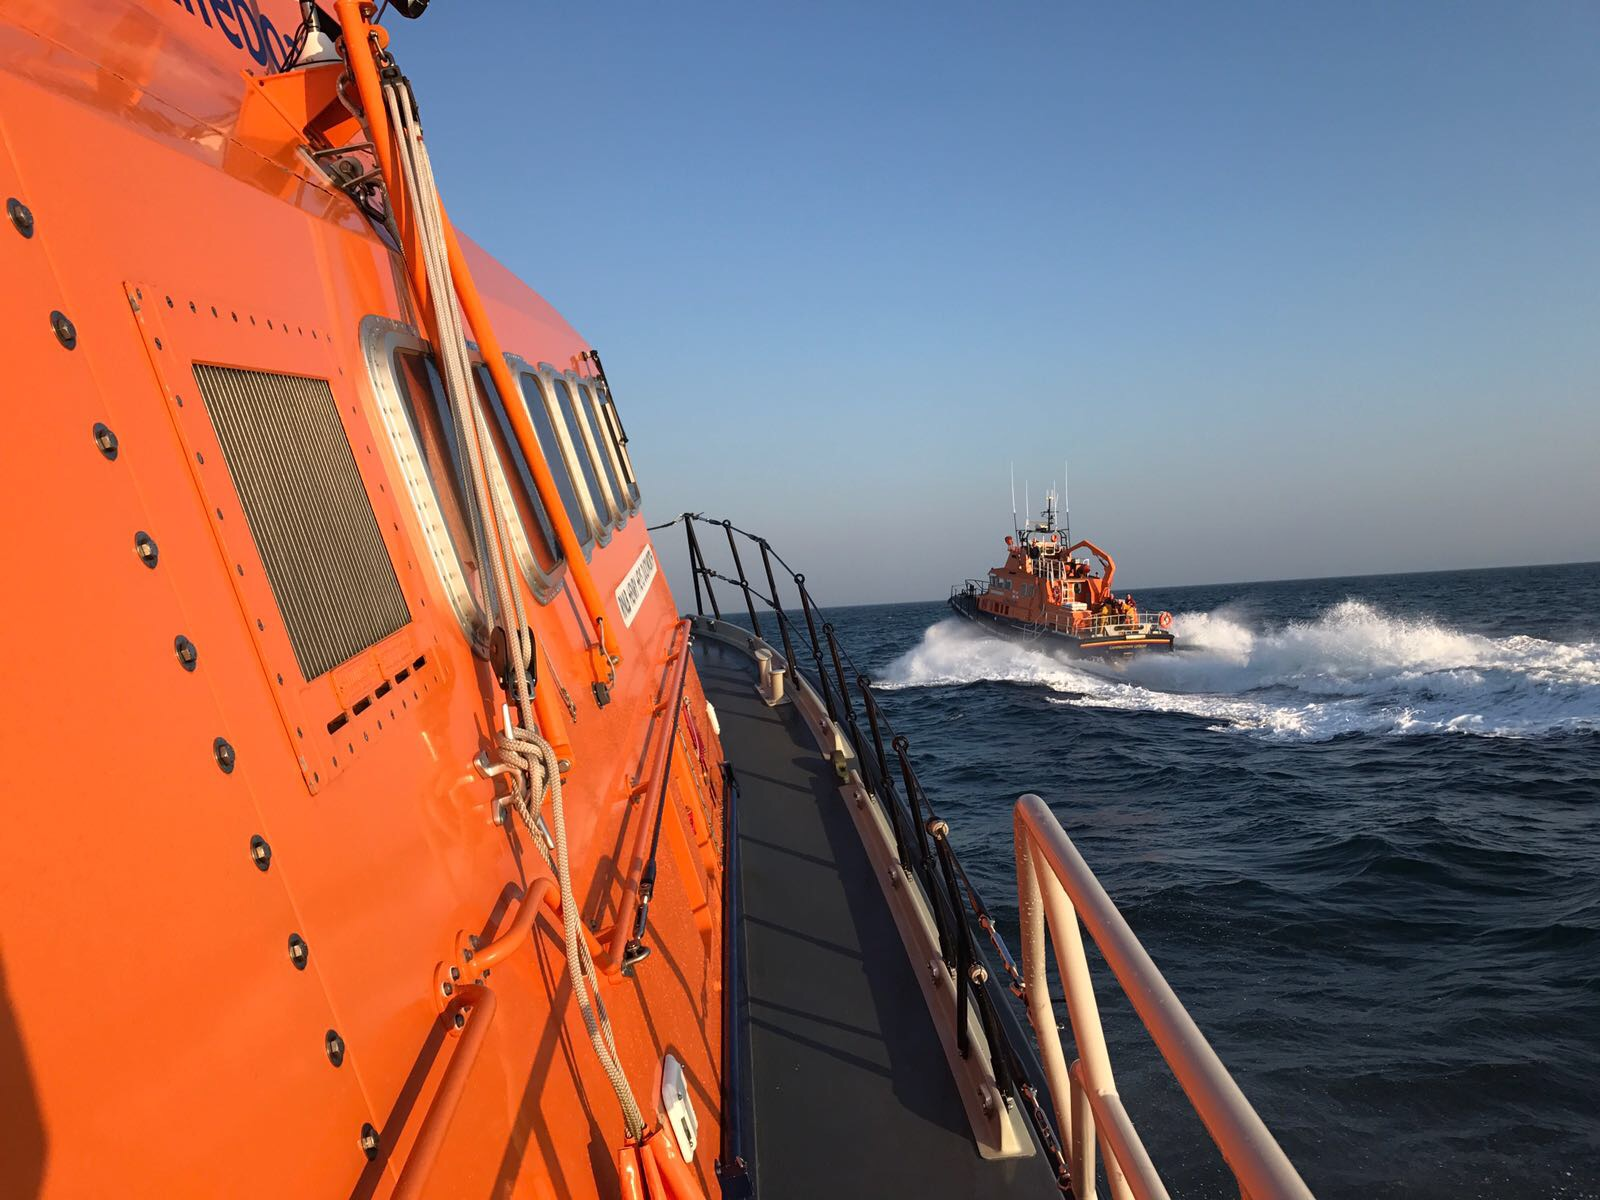 Red Bay RNLI and Campbeltown RNLI in search for missing surfer